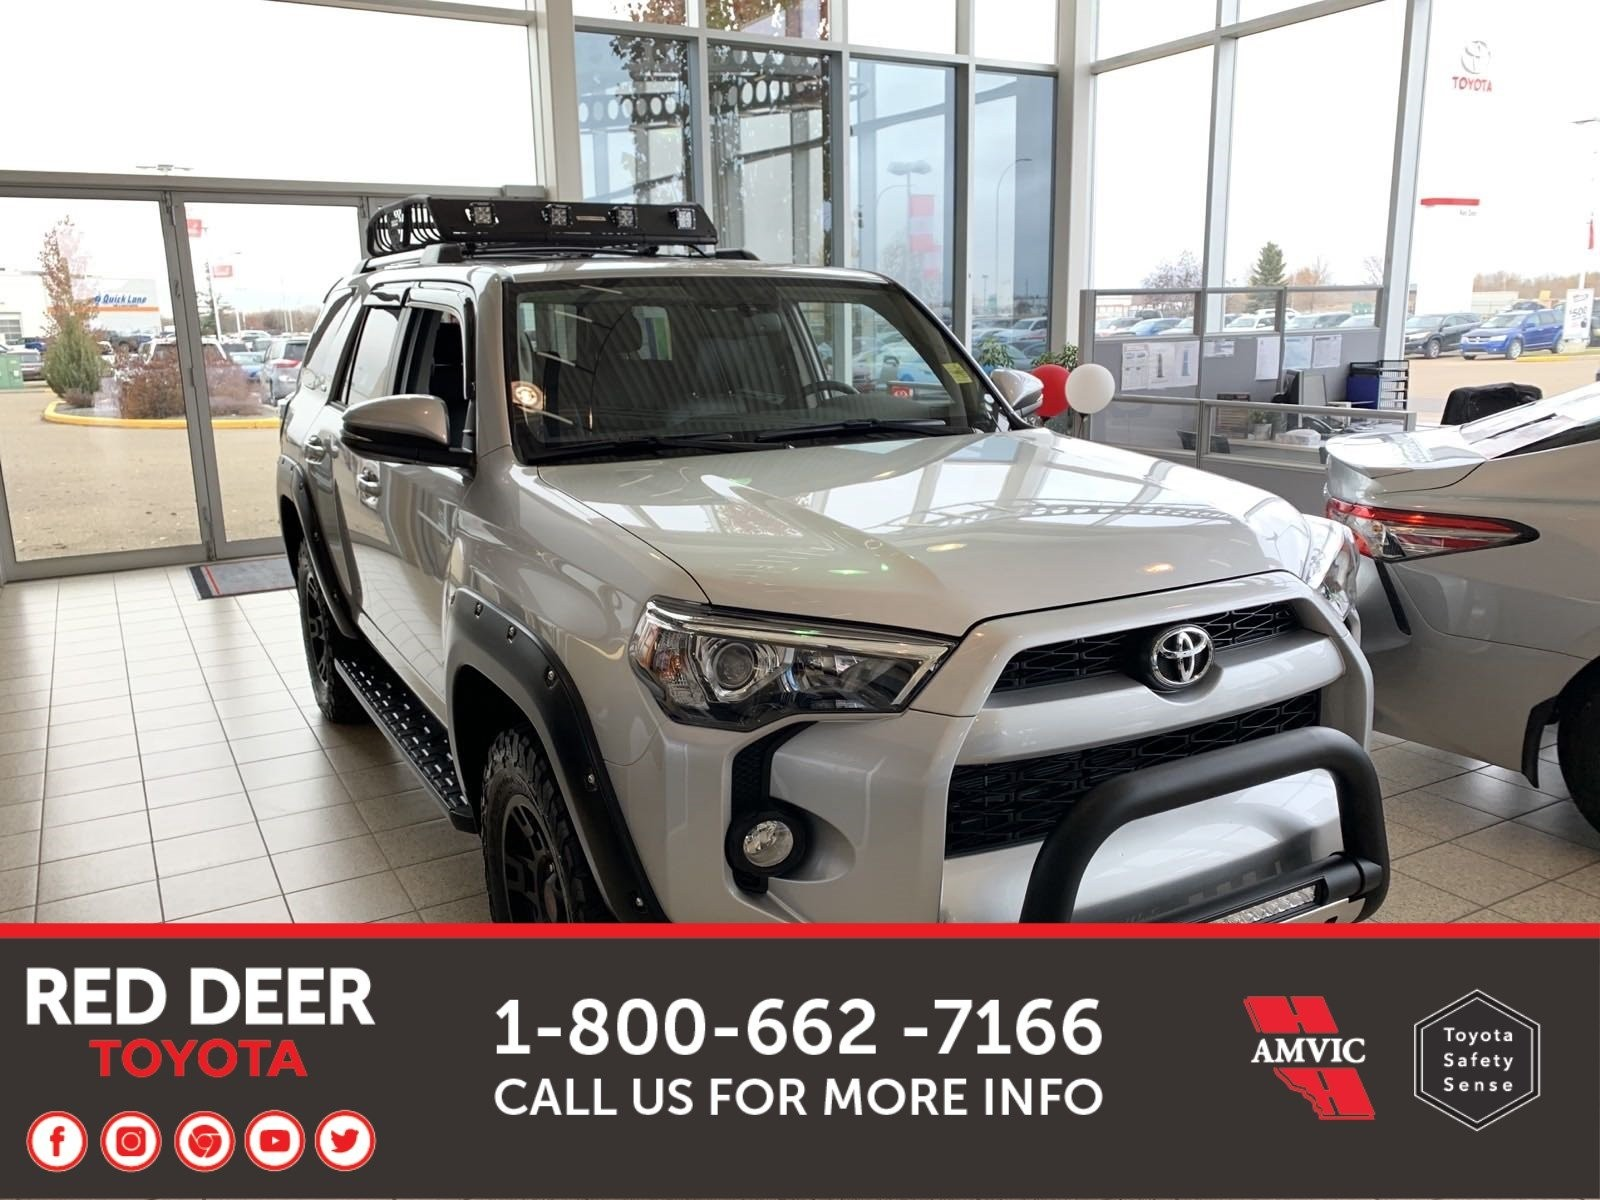 2006 toyota 4runner Parts Diagram New 2019 toyota 4runner Sr5 W T Upgrades with Navigation & 4wd Of 2006 toyota 4runner Parts Diagram